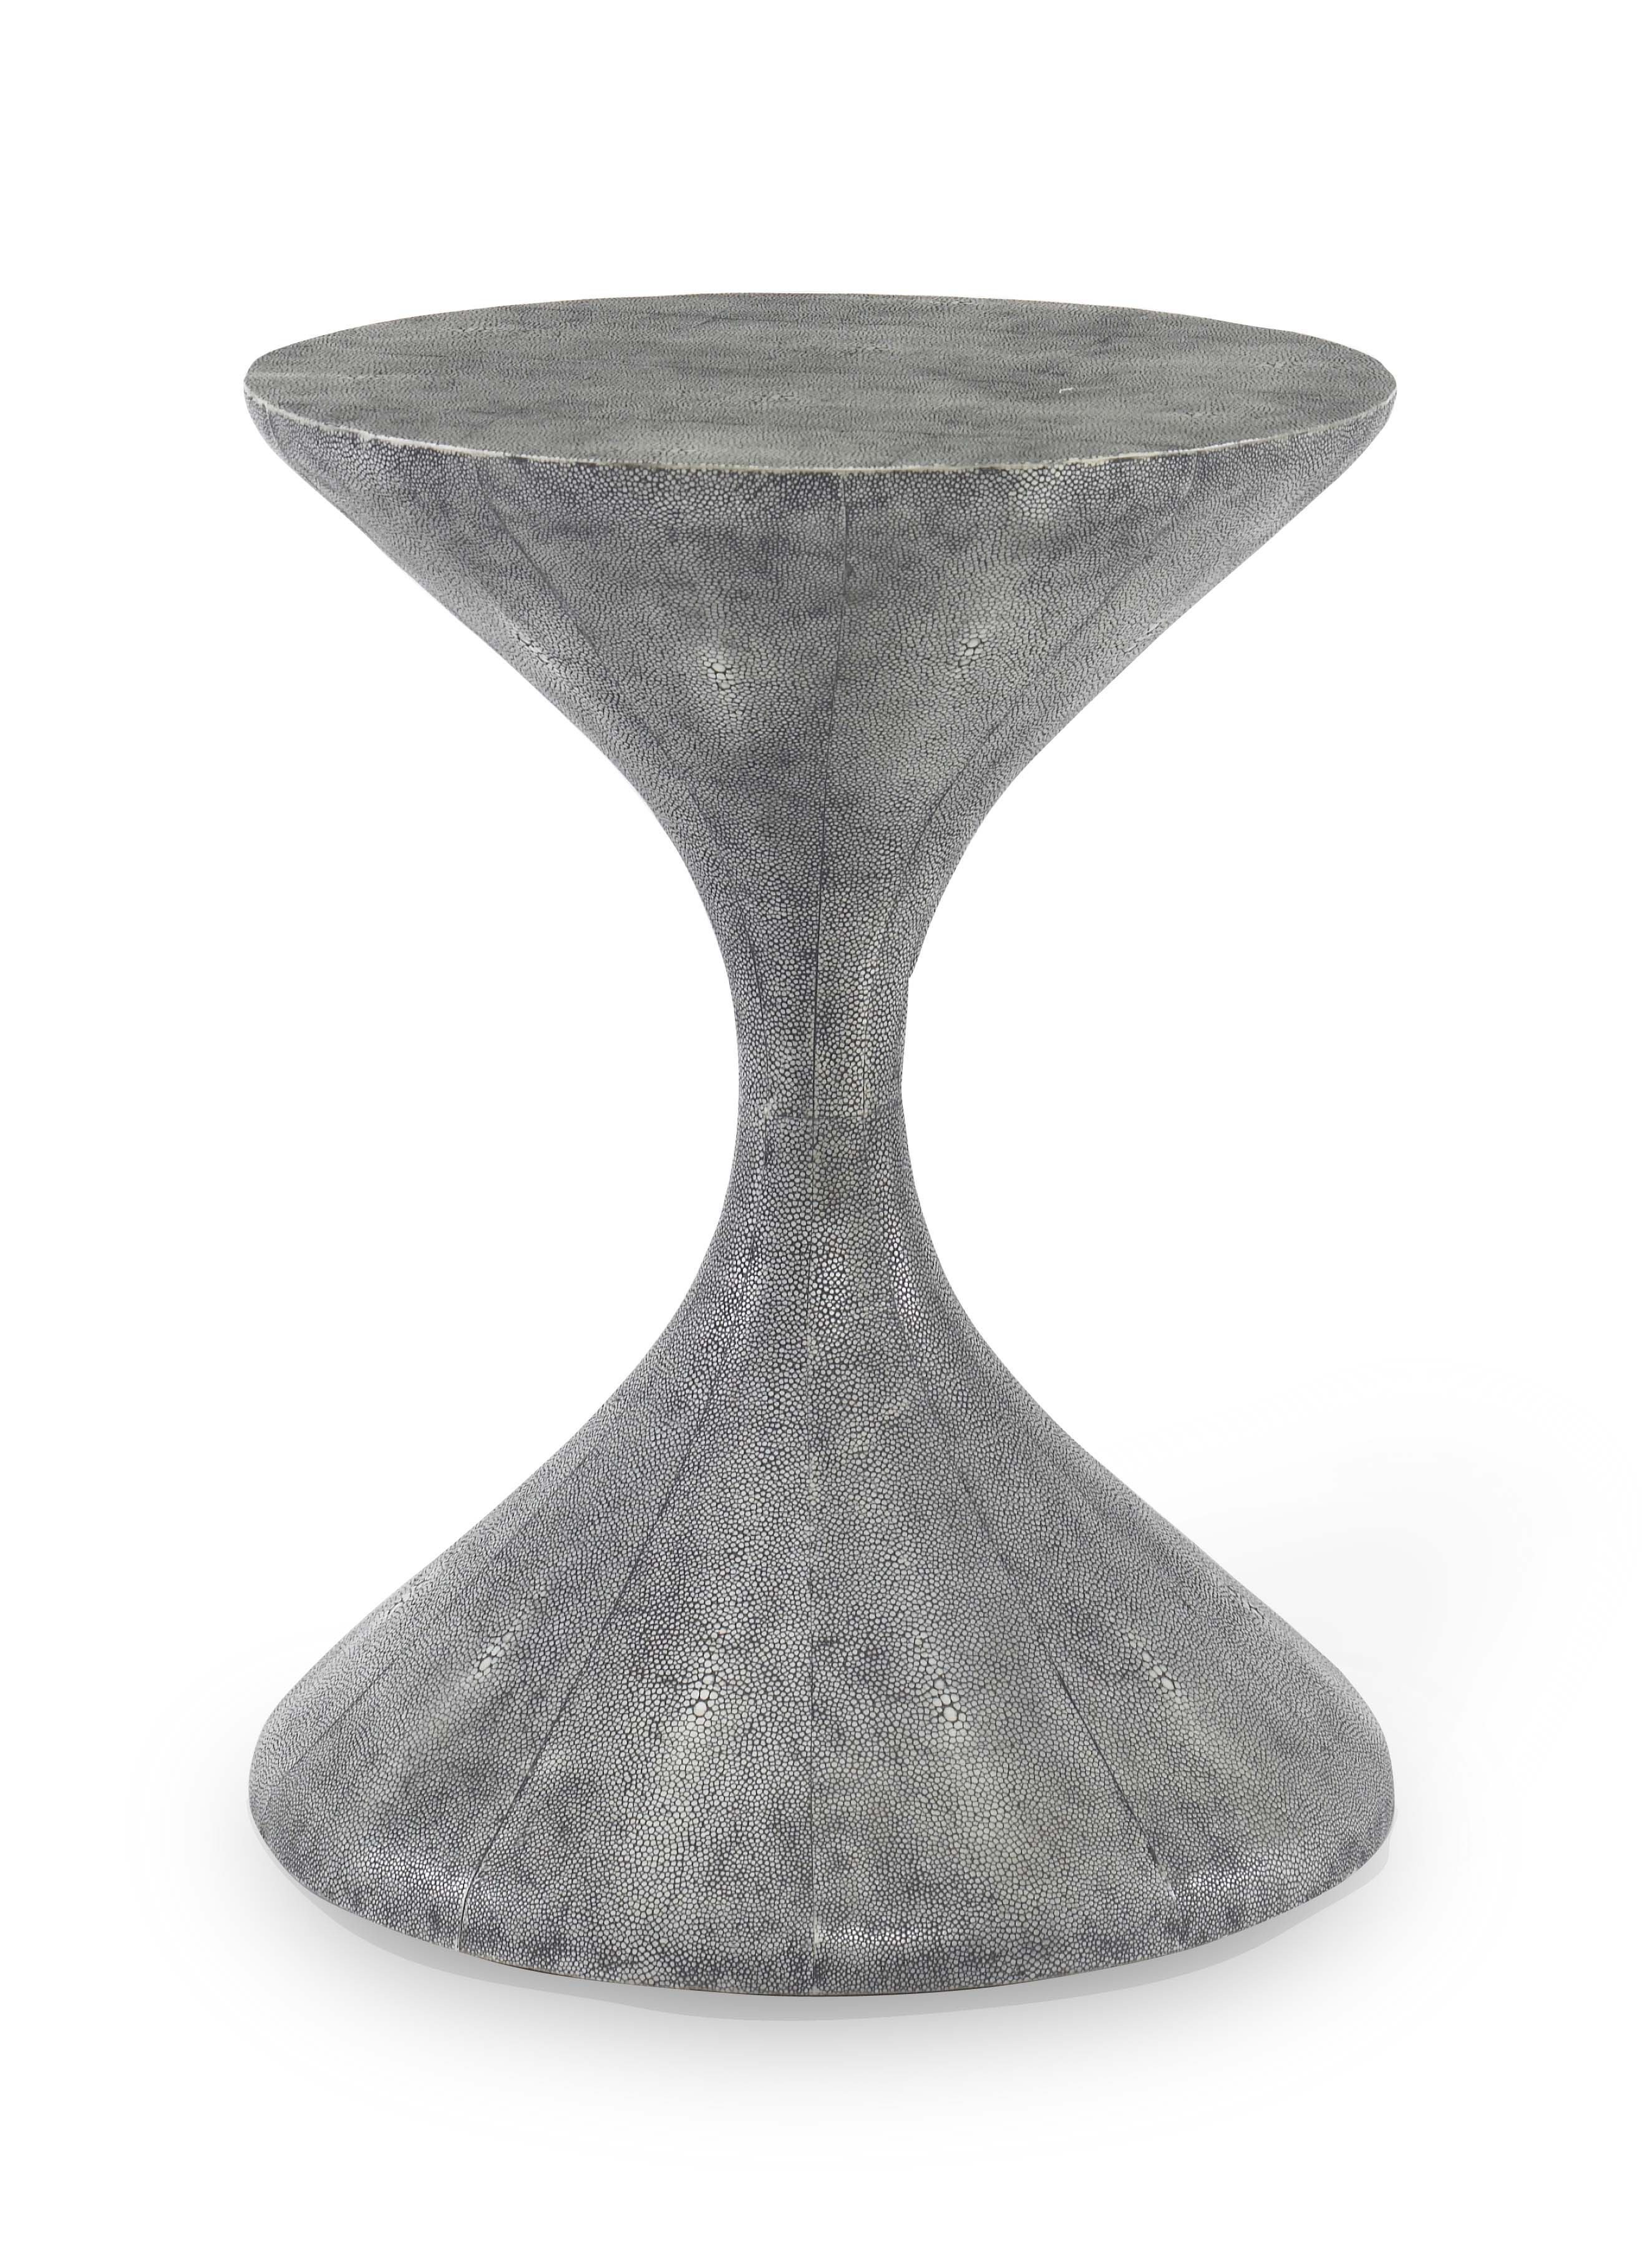 New for 2013! Lido Side Table in Storm Faux Shagreen  #NYIGF #LVDC #mrbrownhome #julianchichester